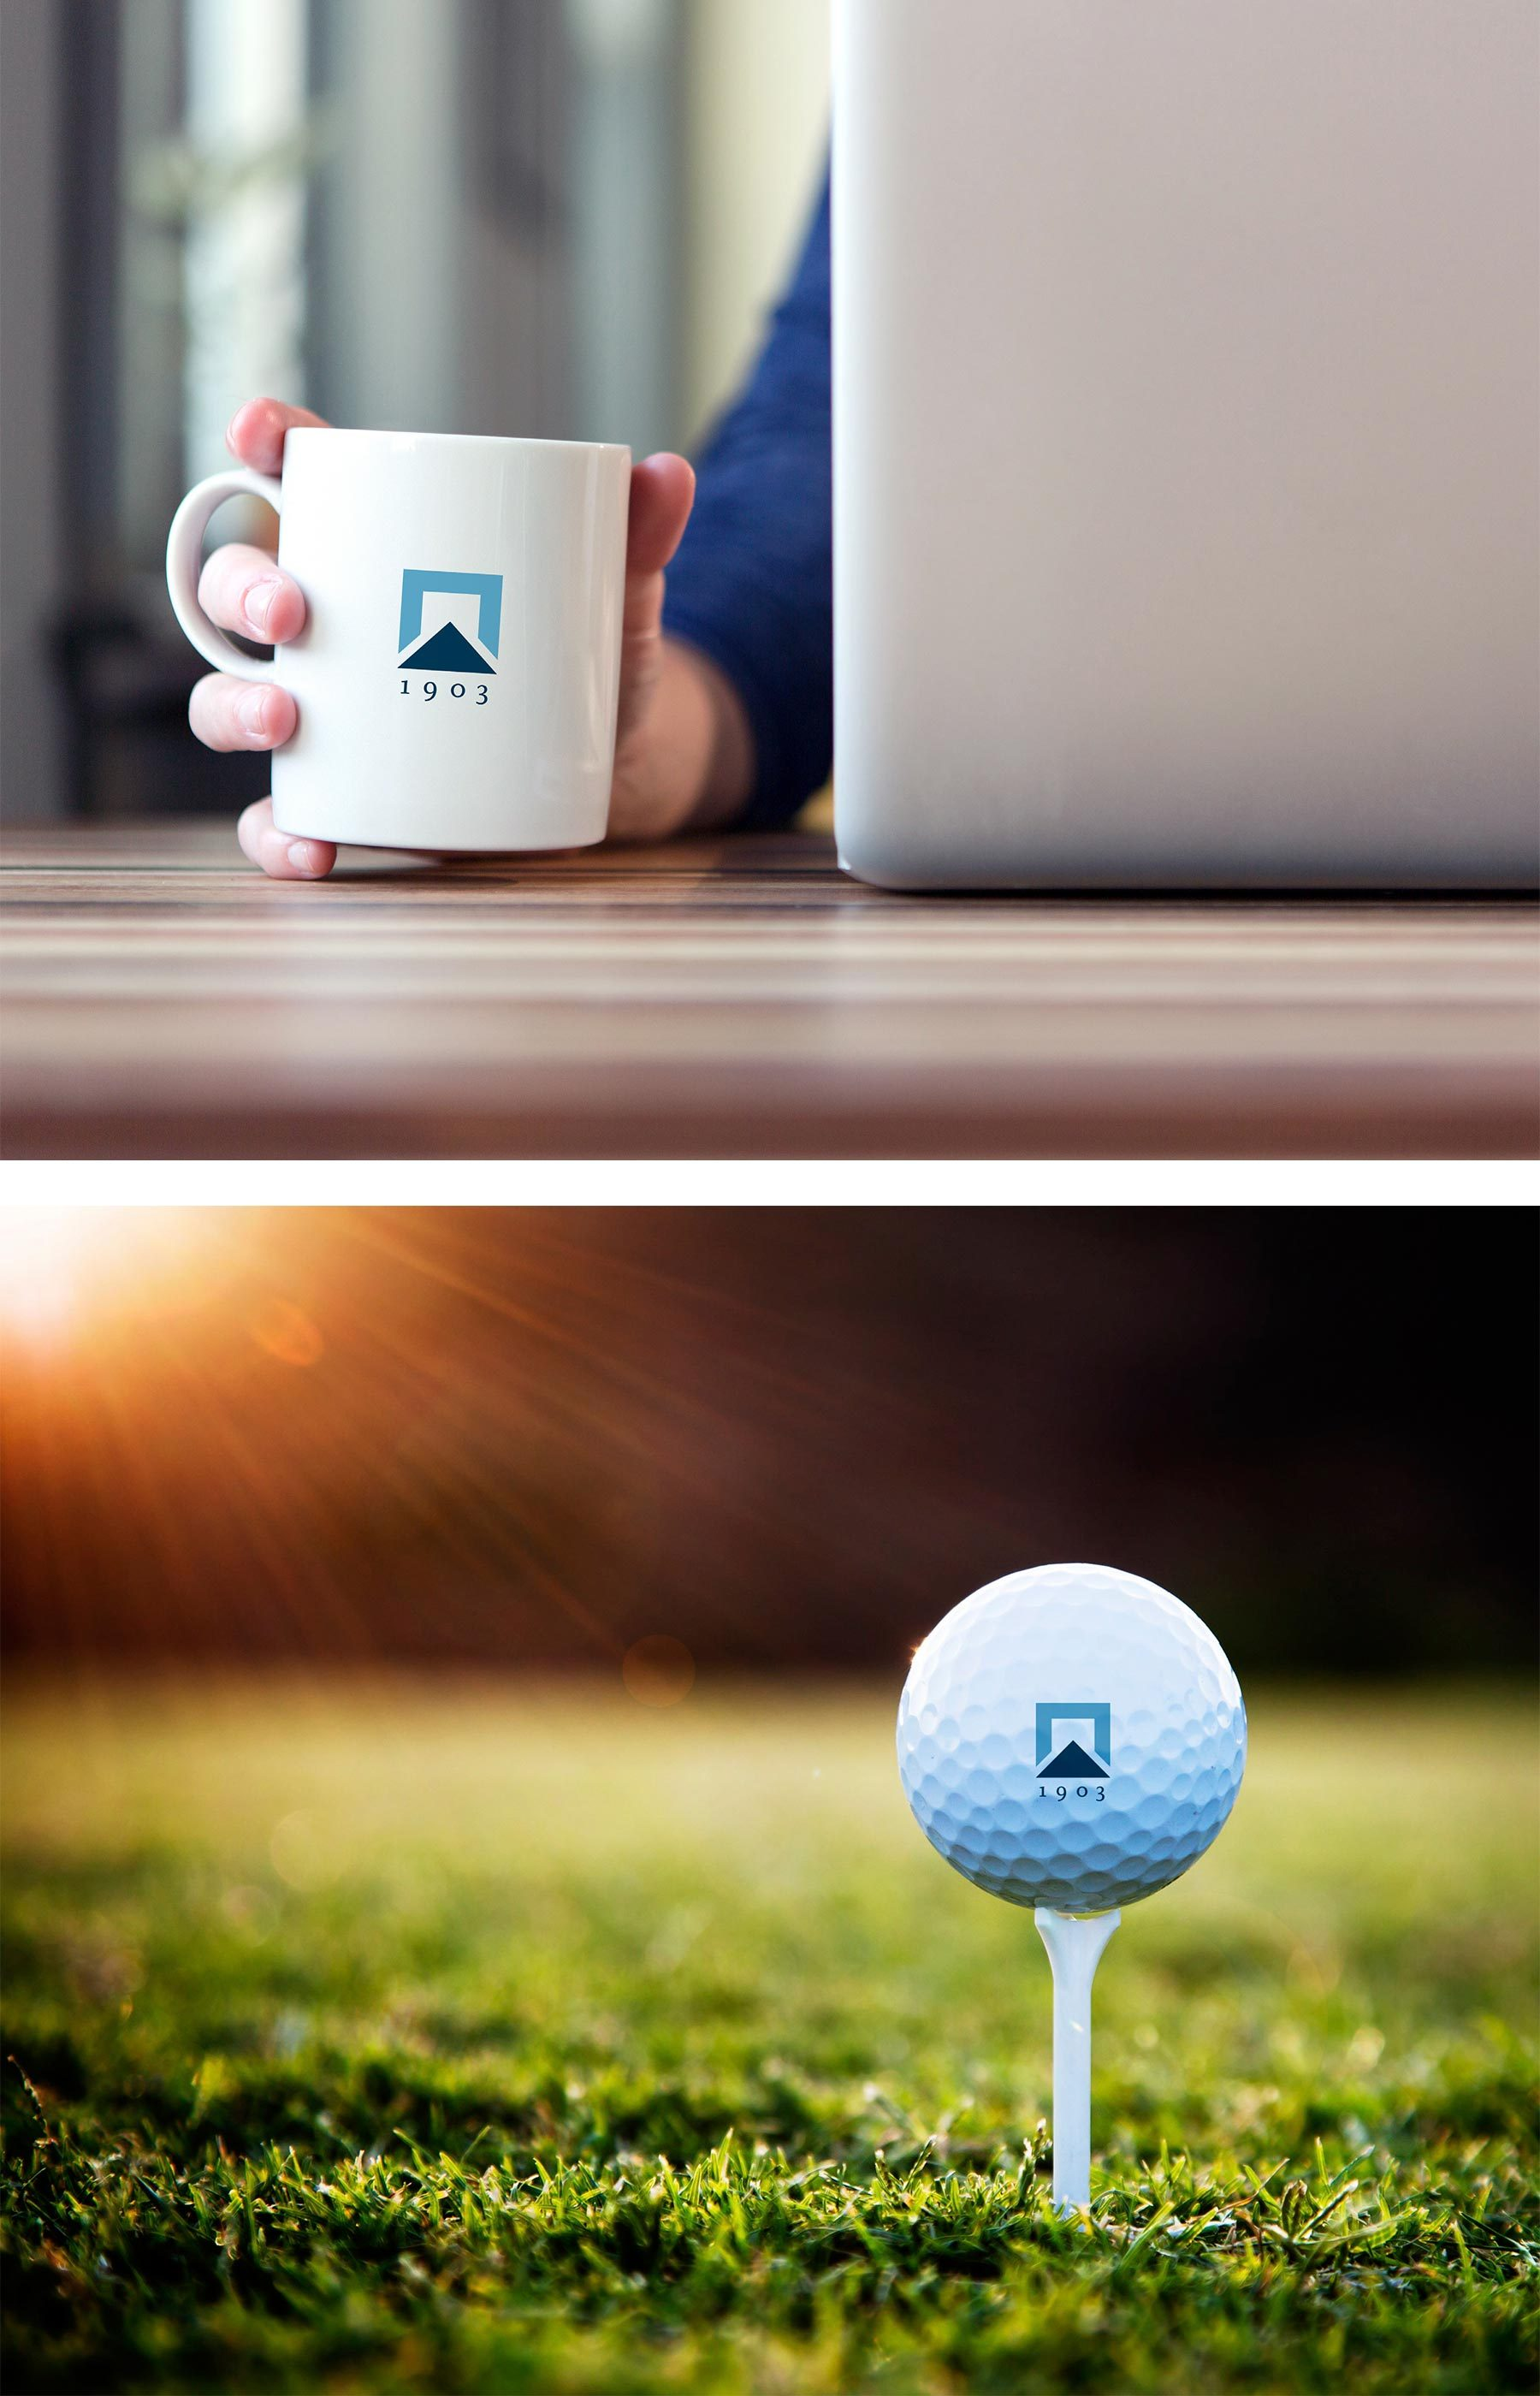 Coffee mug and golf ball with Gordon Brothers logo on them